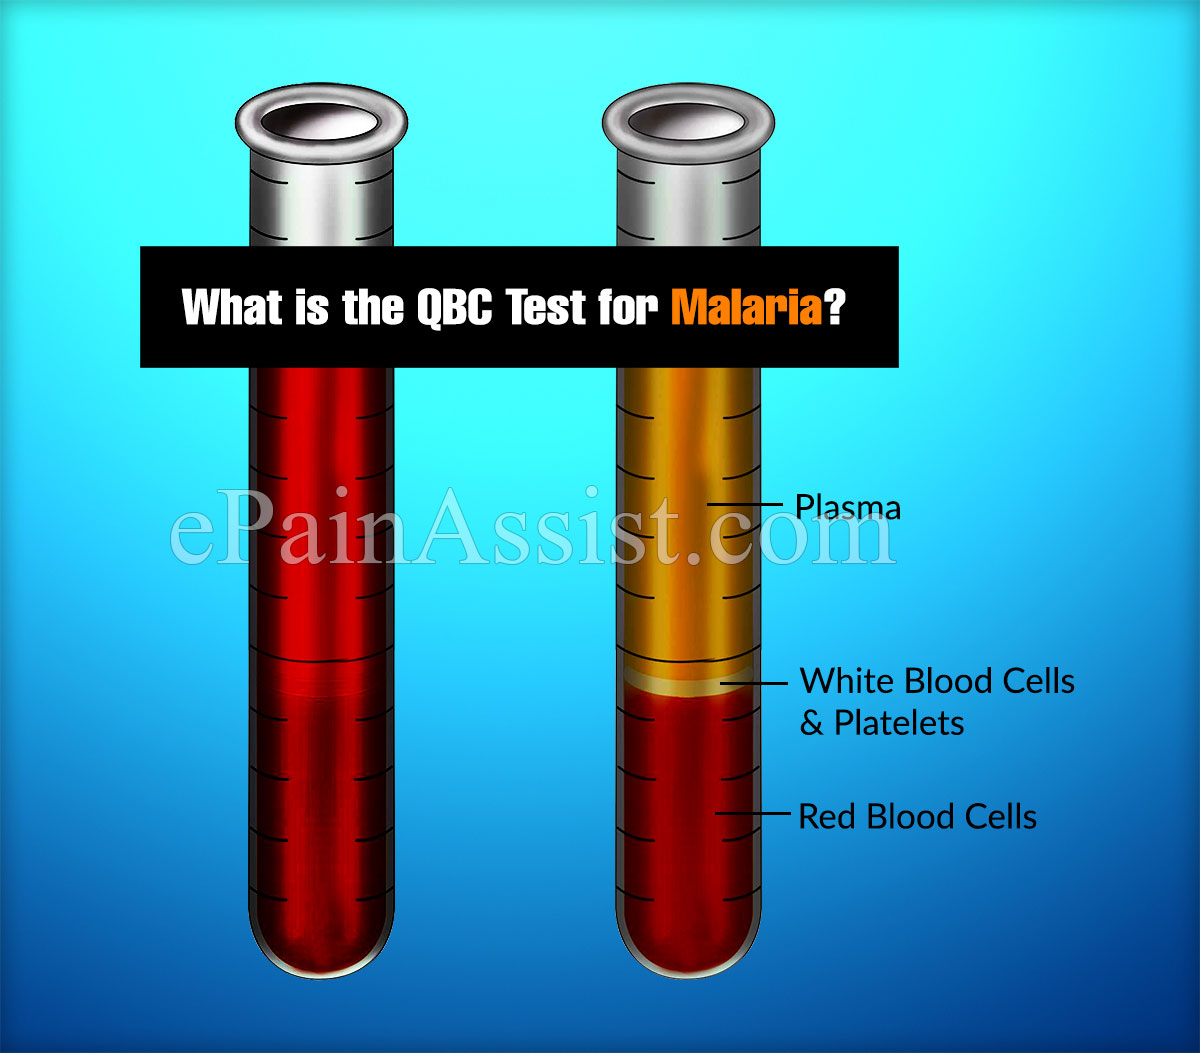 What is the QBC Test for Malaria?